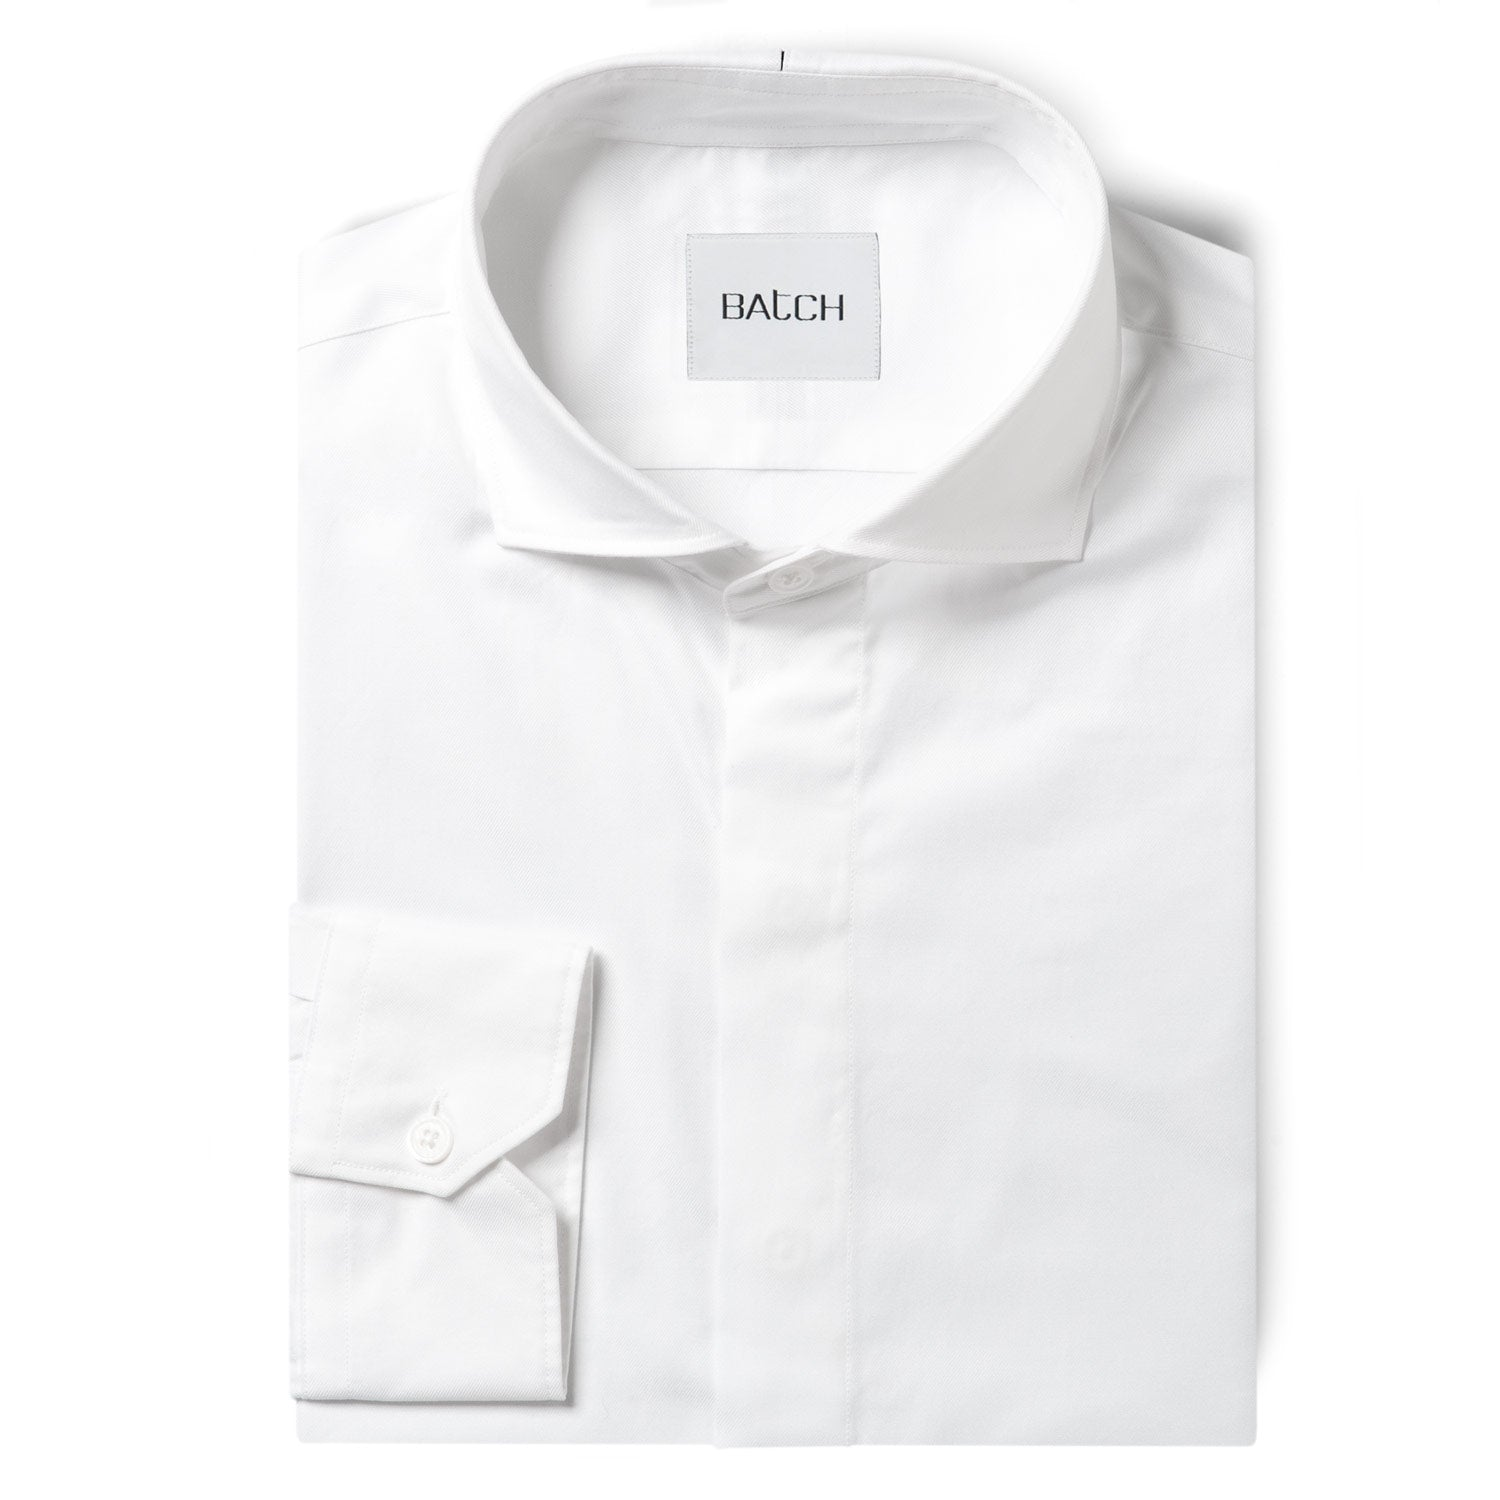 Essential Cutaway Shirt No Pocket Hidden Buttons - Pure White Wrinkle Defiant Twill